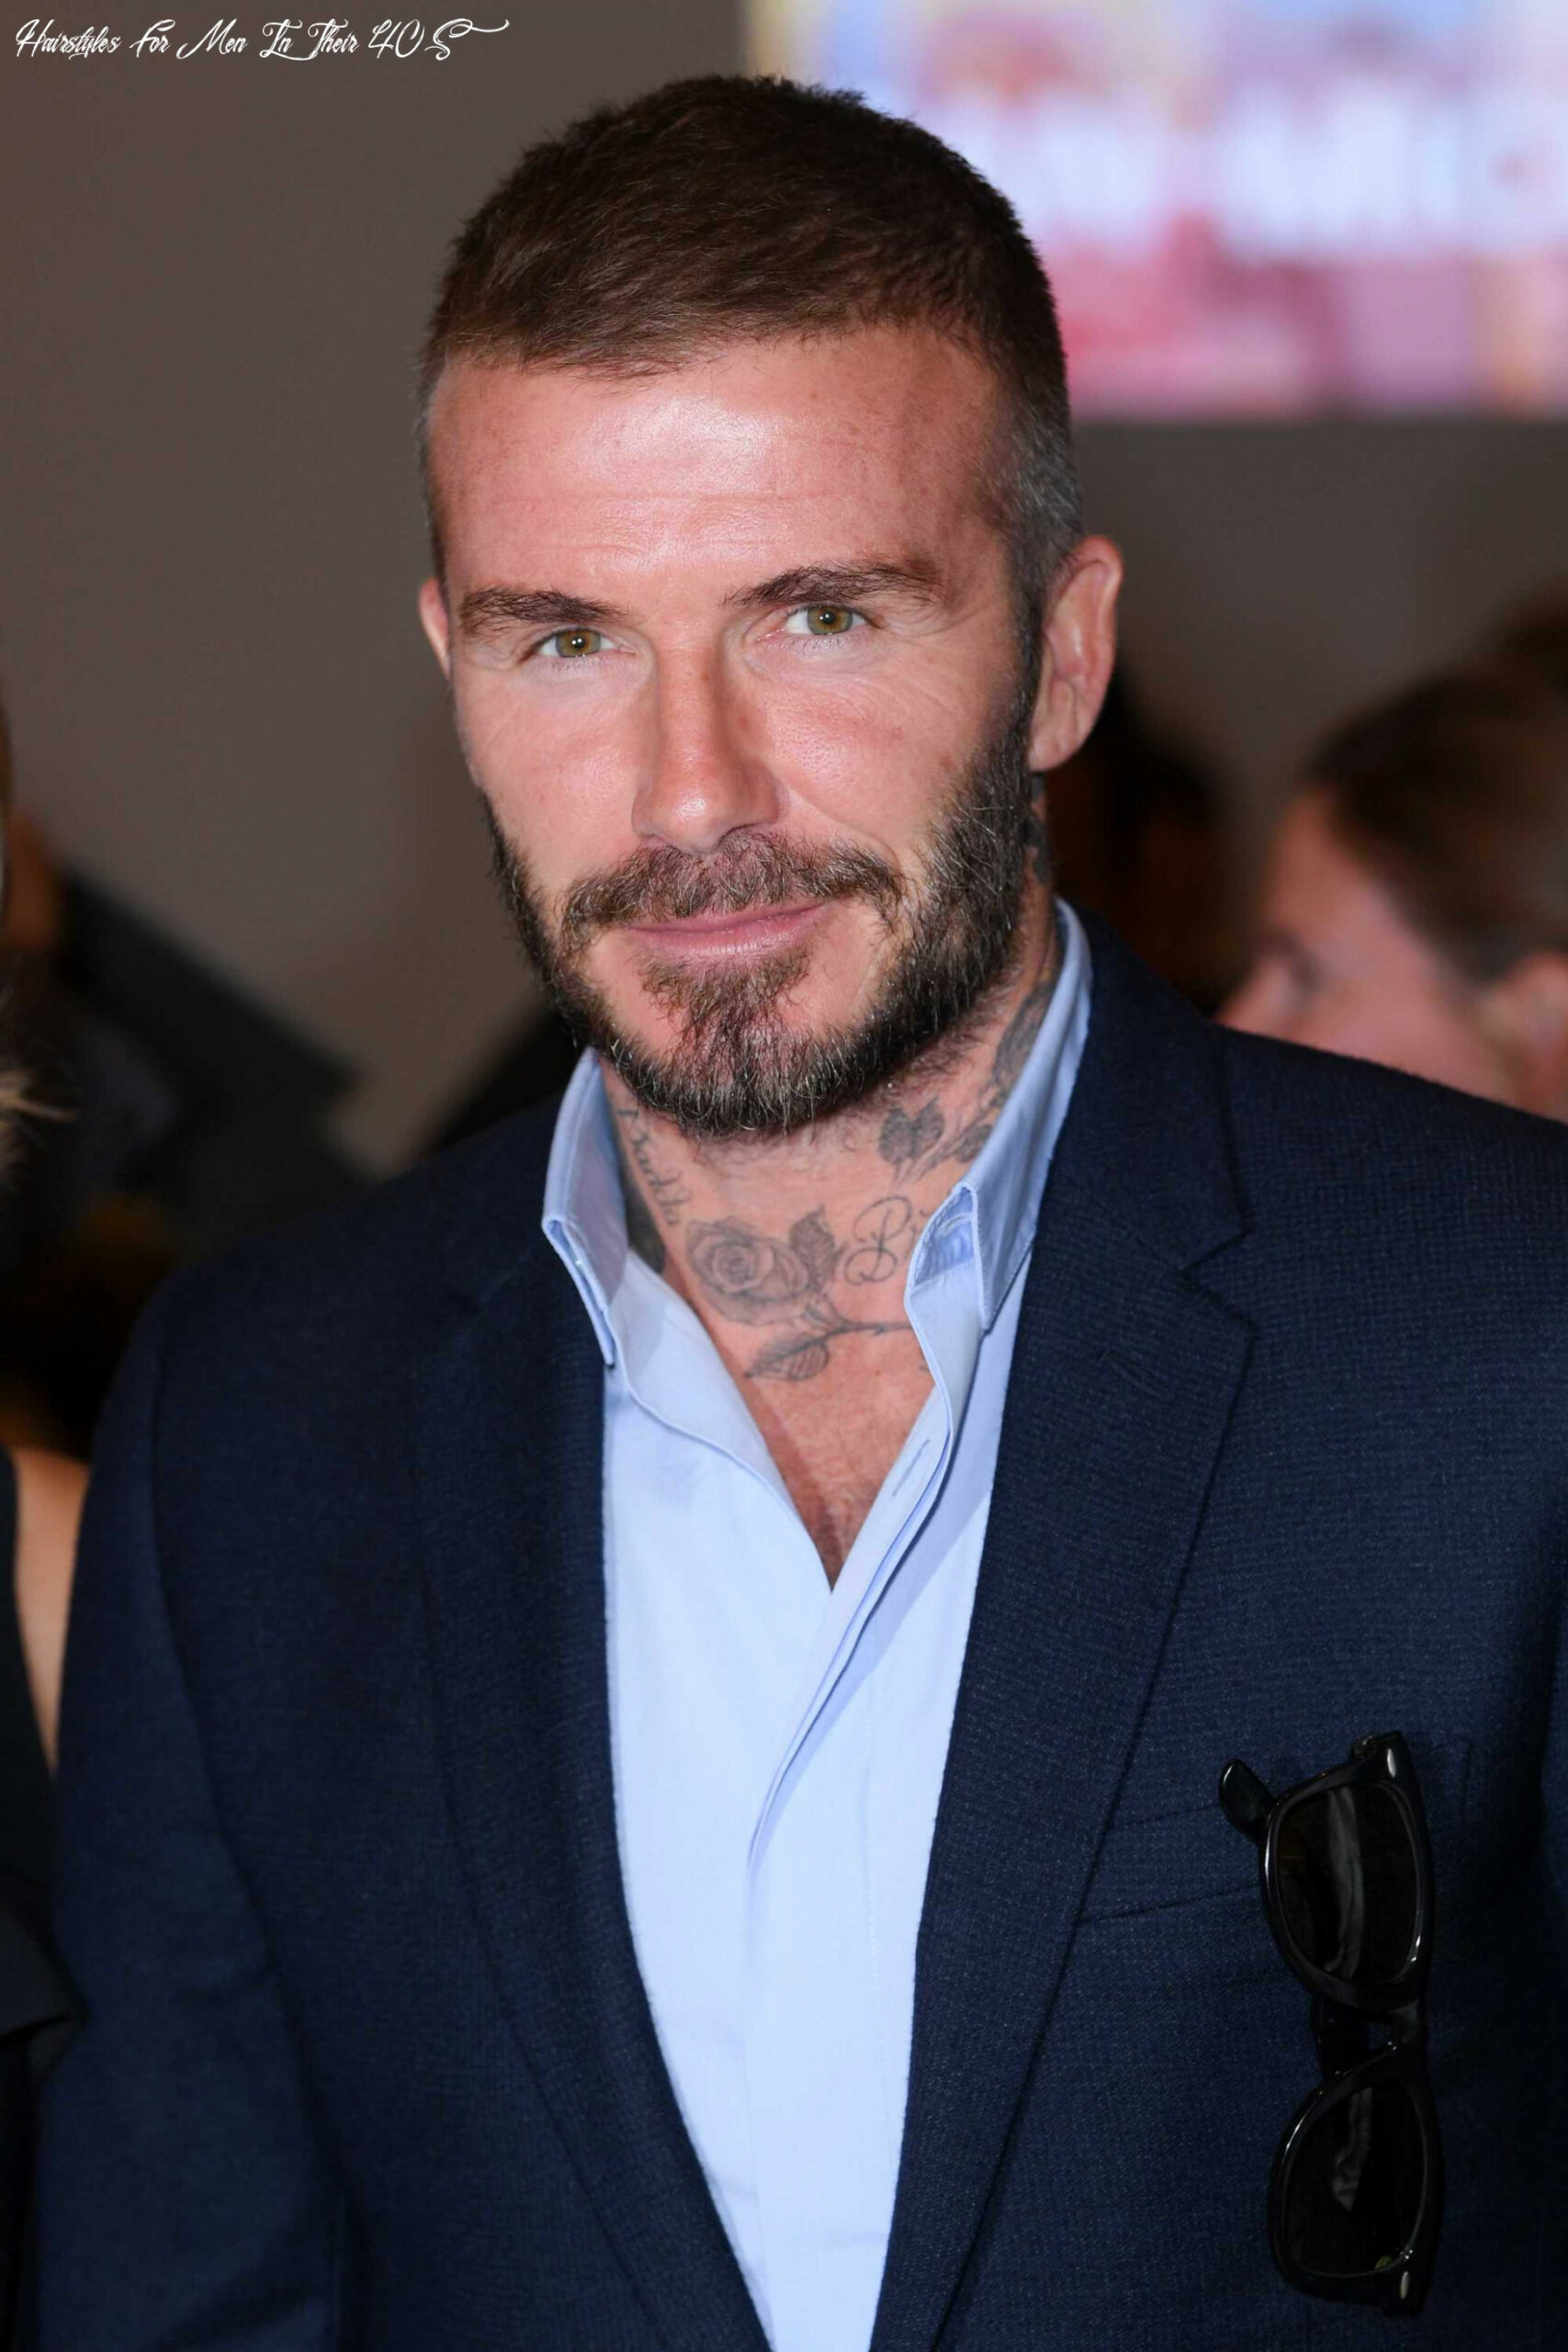 10 best hairstyles and haircuts for men over 10 in 10 | ath uk hairstyles for men in their 40s